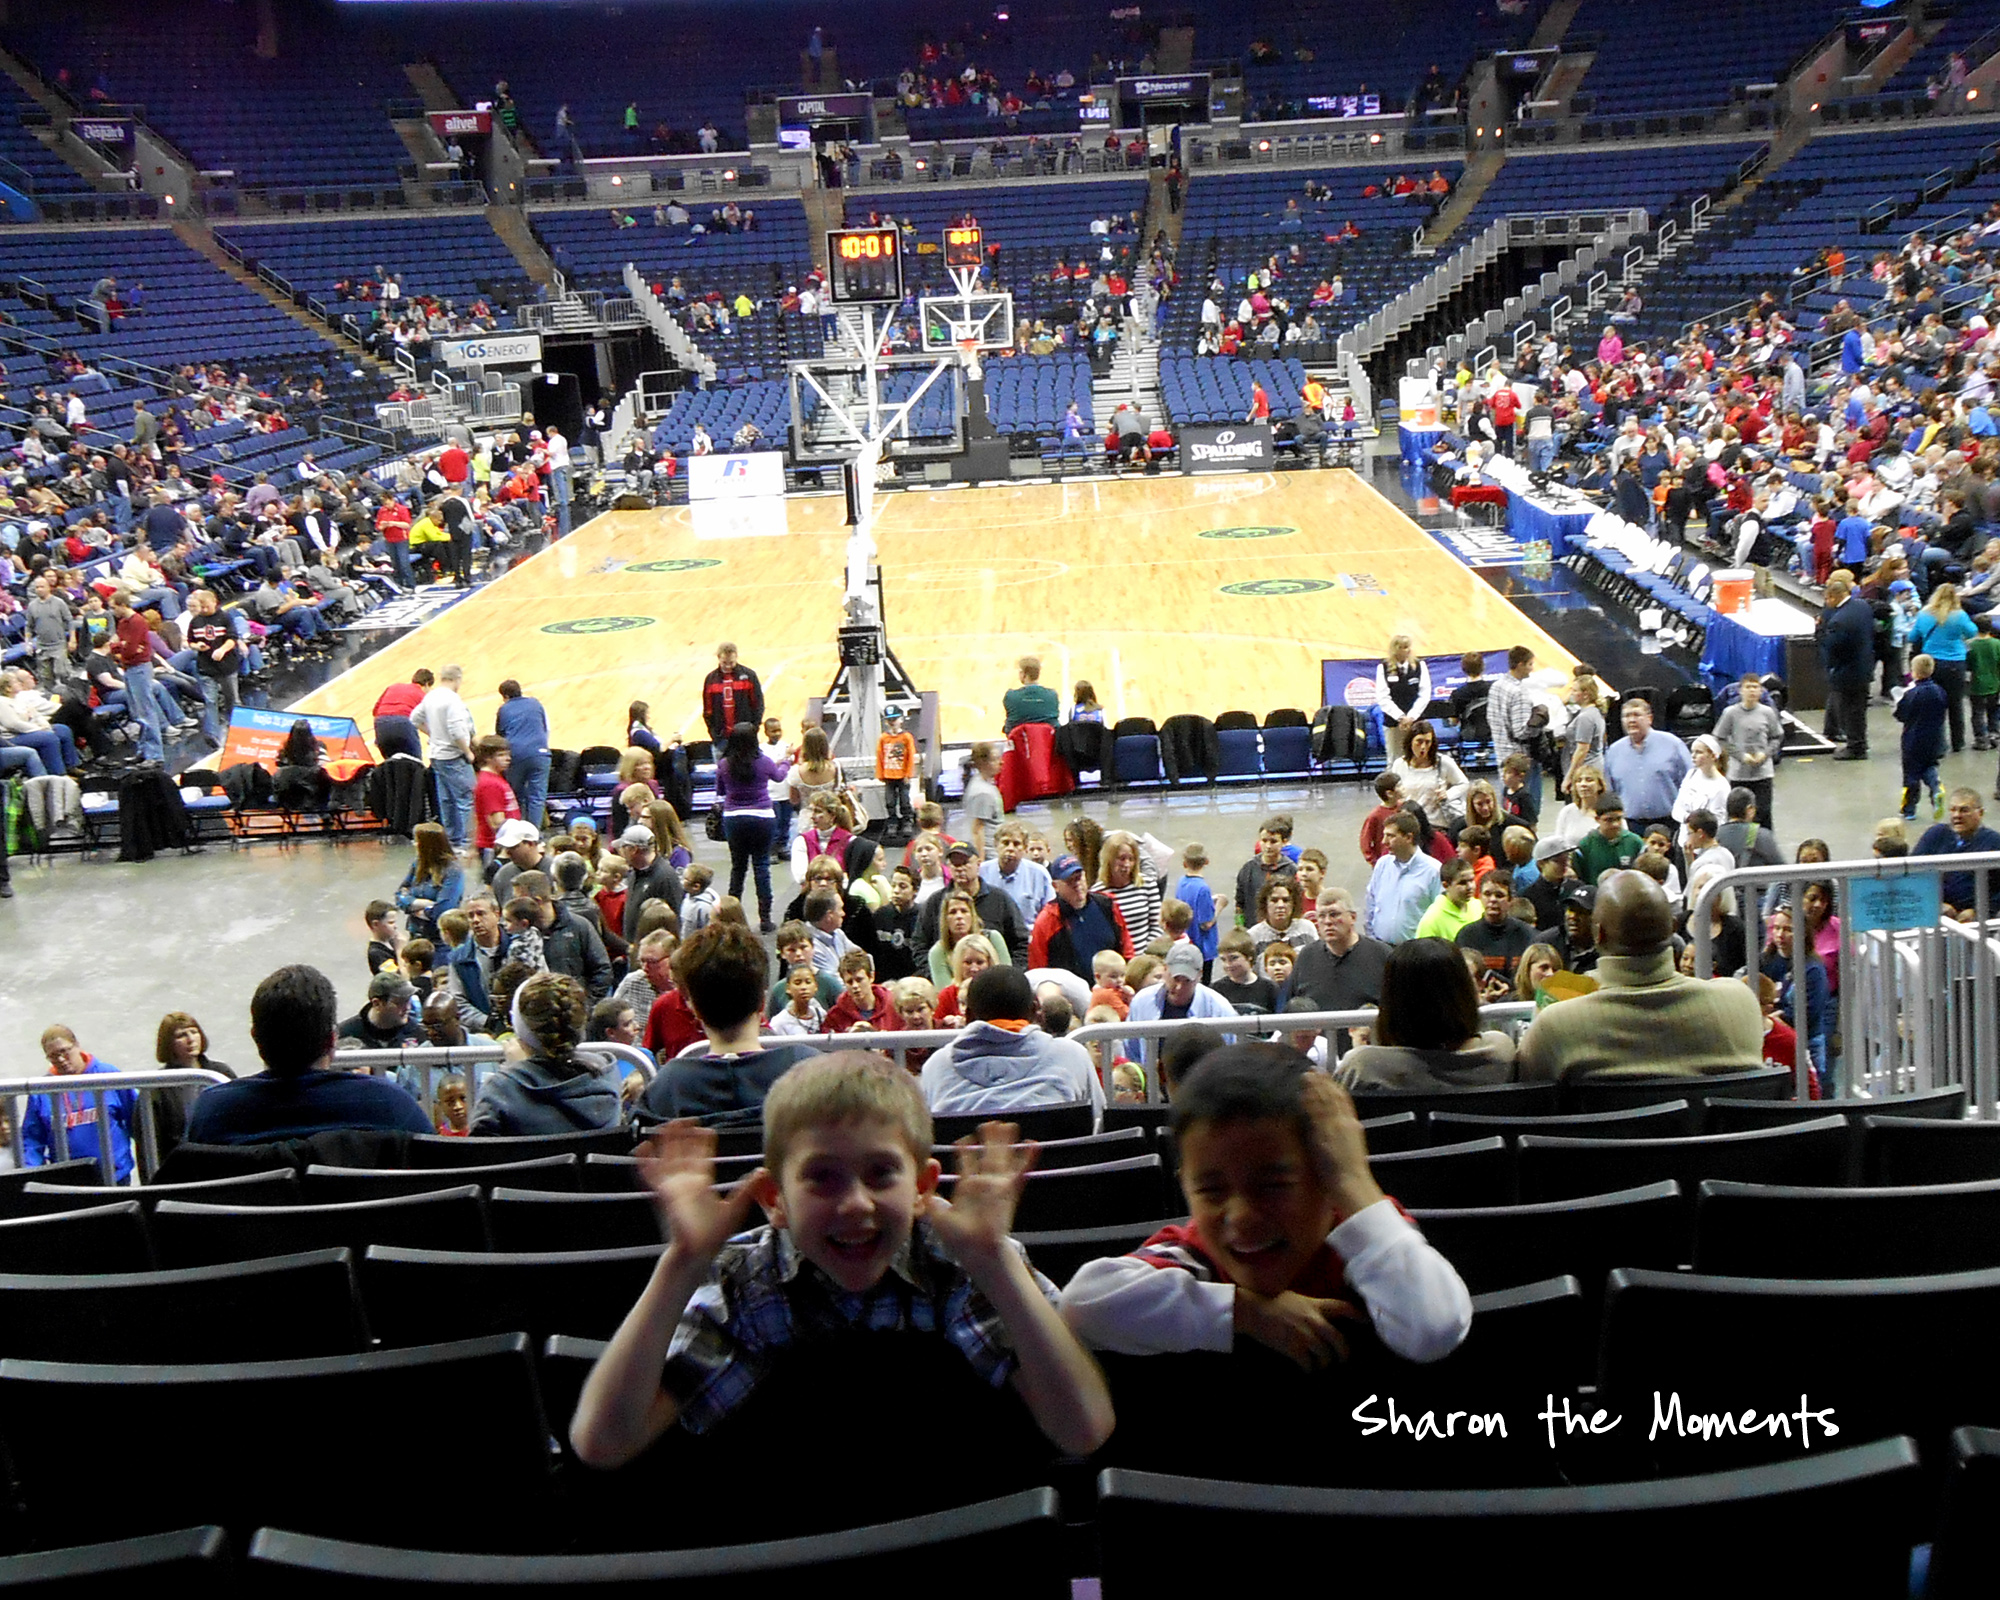 Harlem Globetrotters visit Nationwide Arena|Sharon the Moments blog